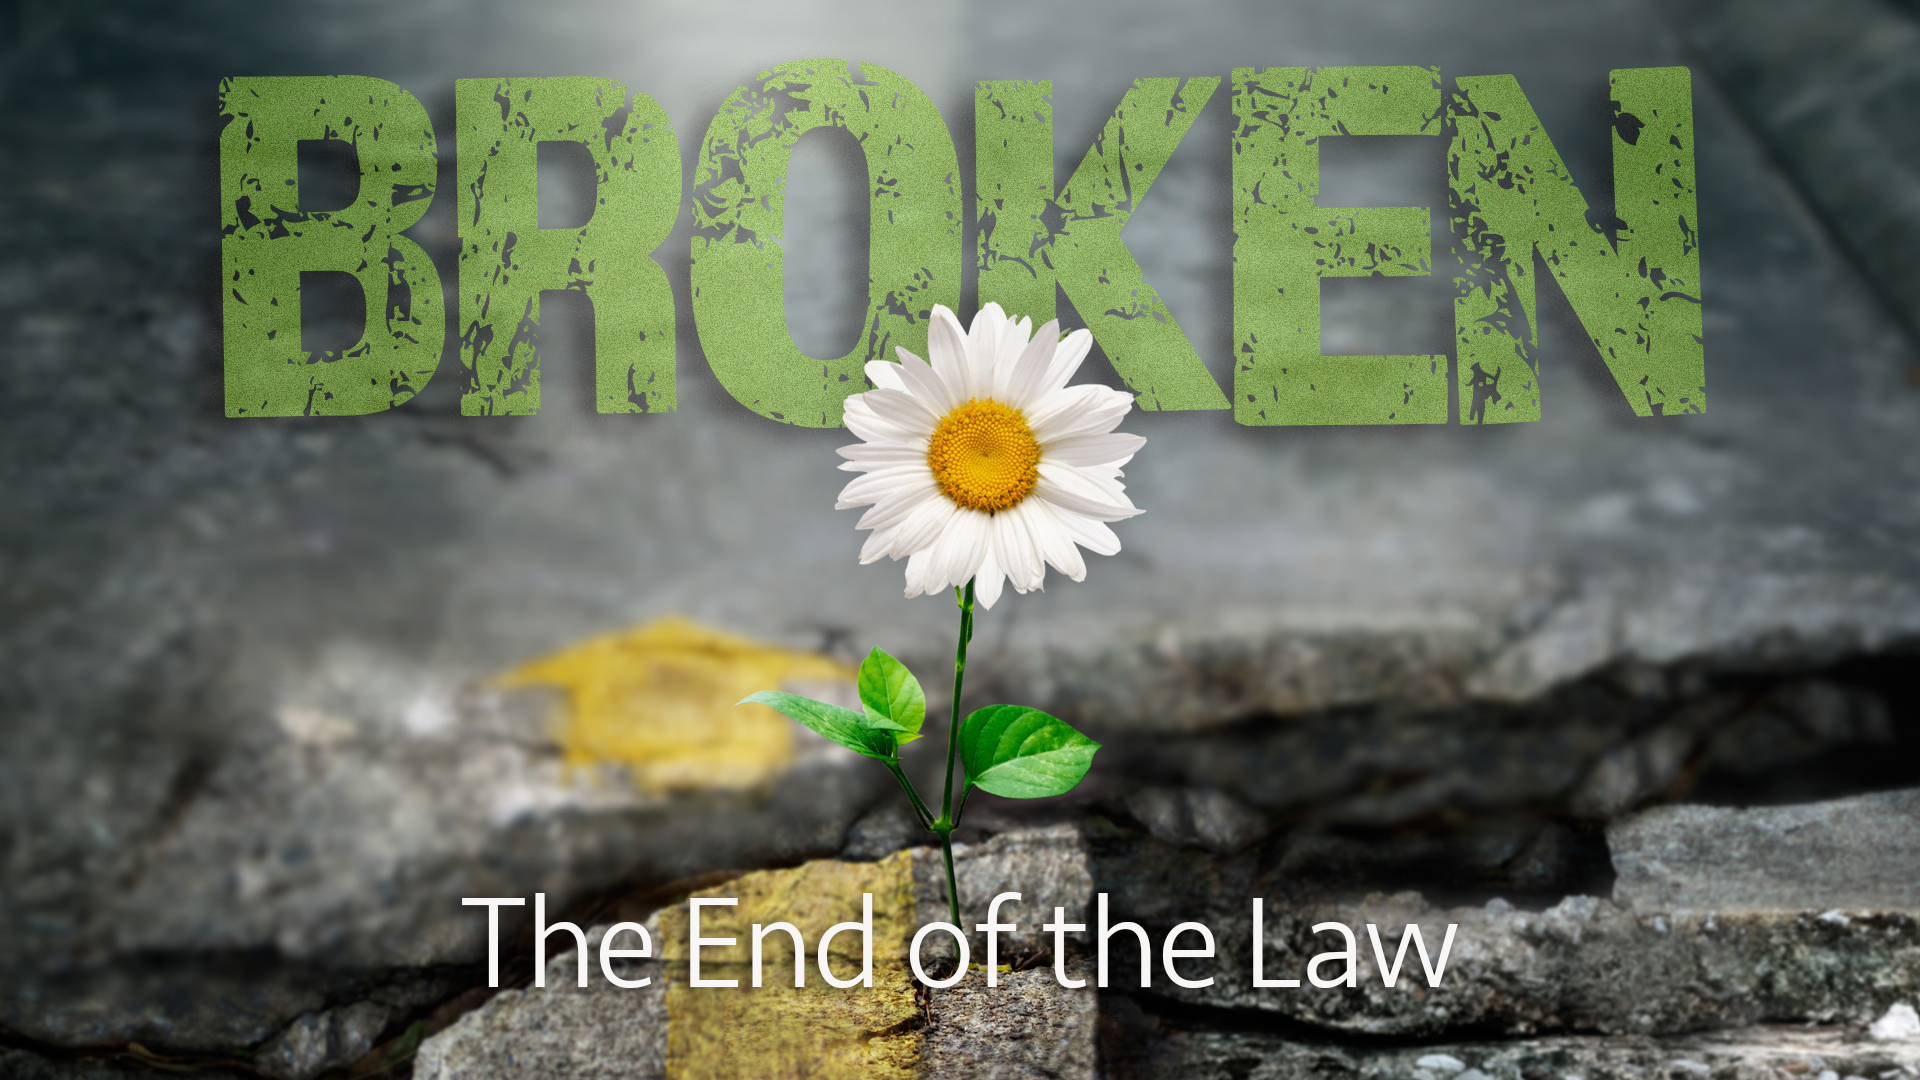 The End of the Law